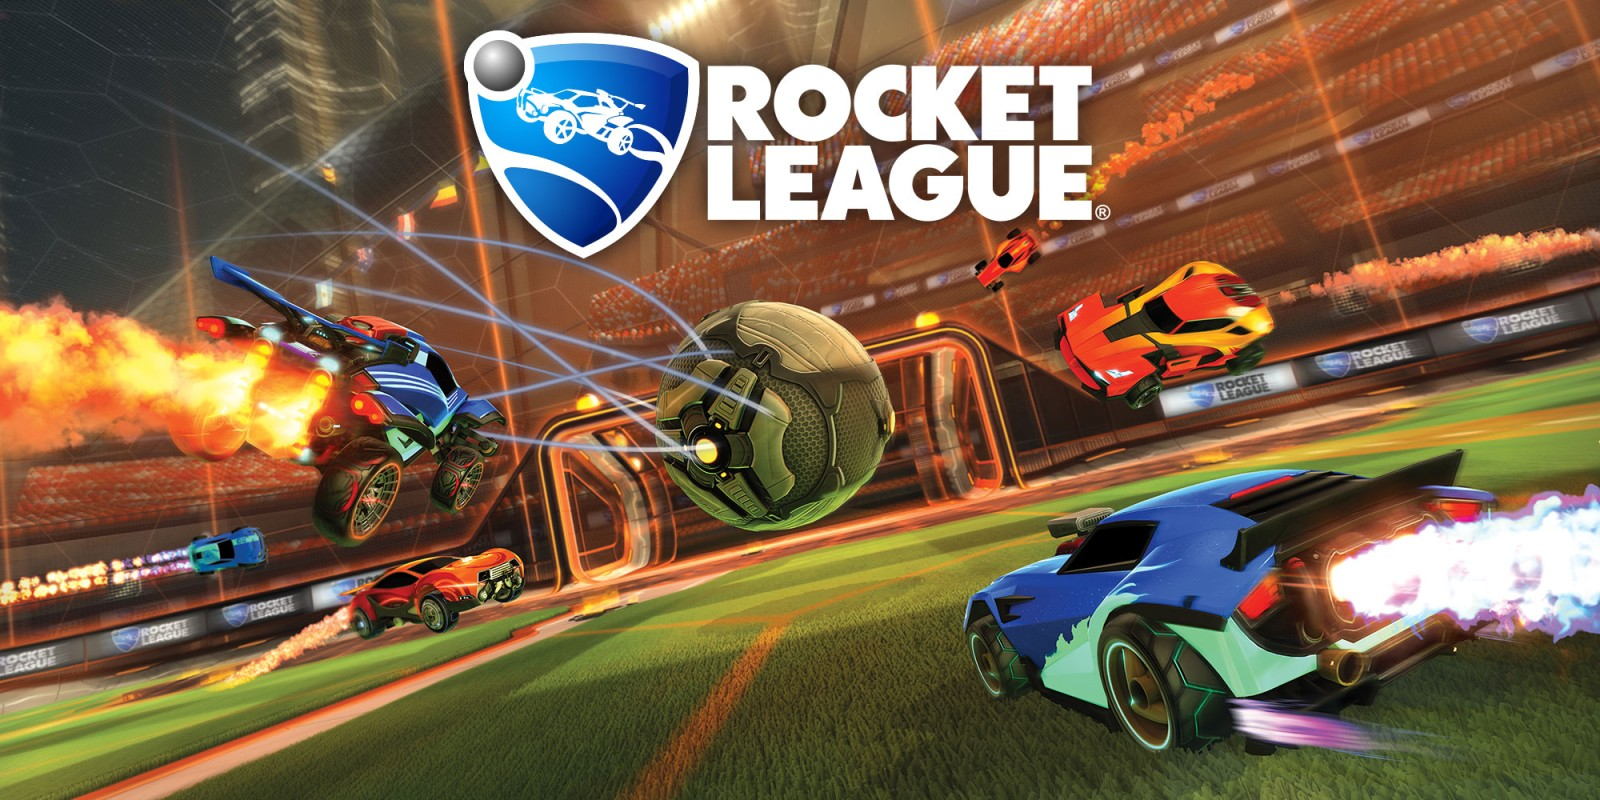 ROCKET LEAGUE CYBERCUP 2X2 [19.10.2018]